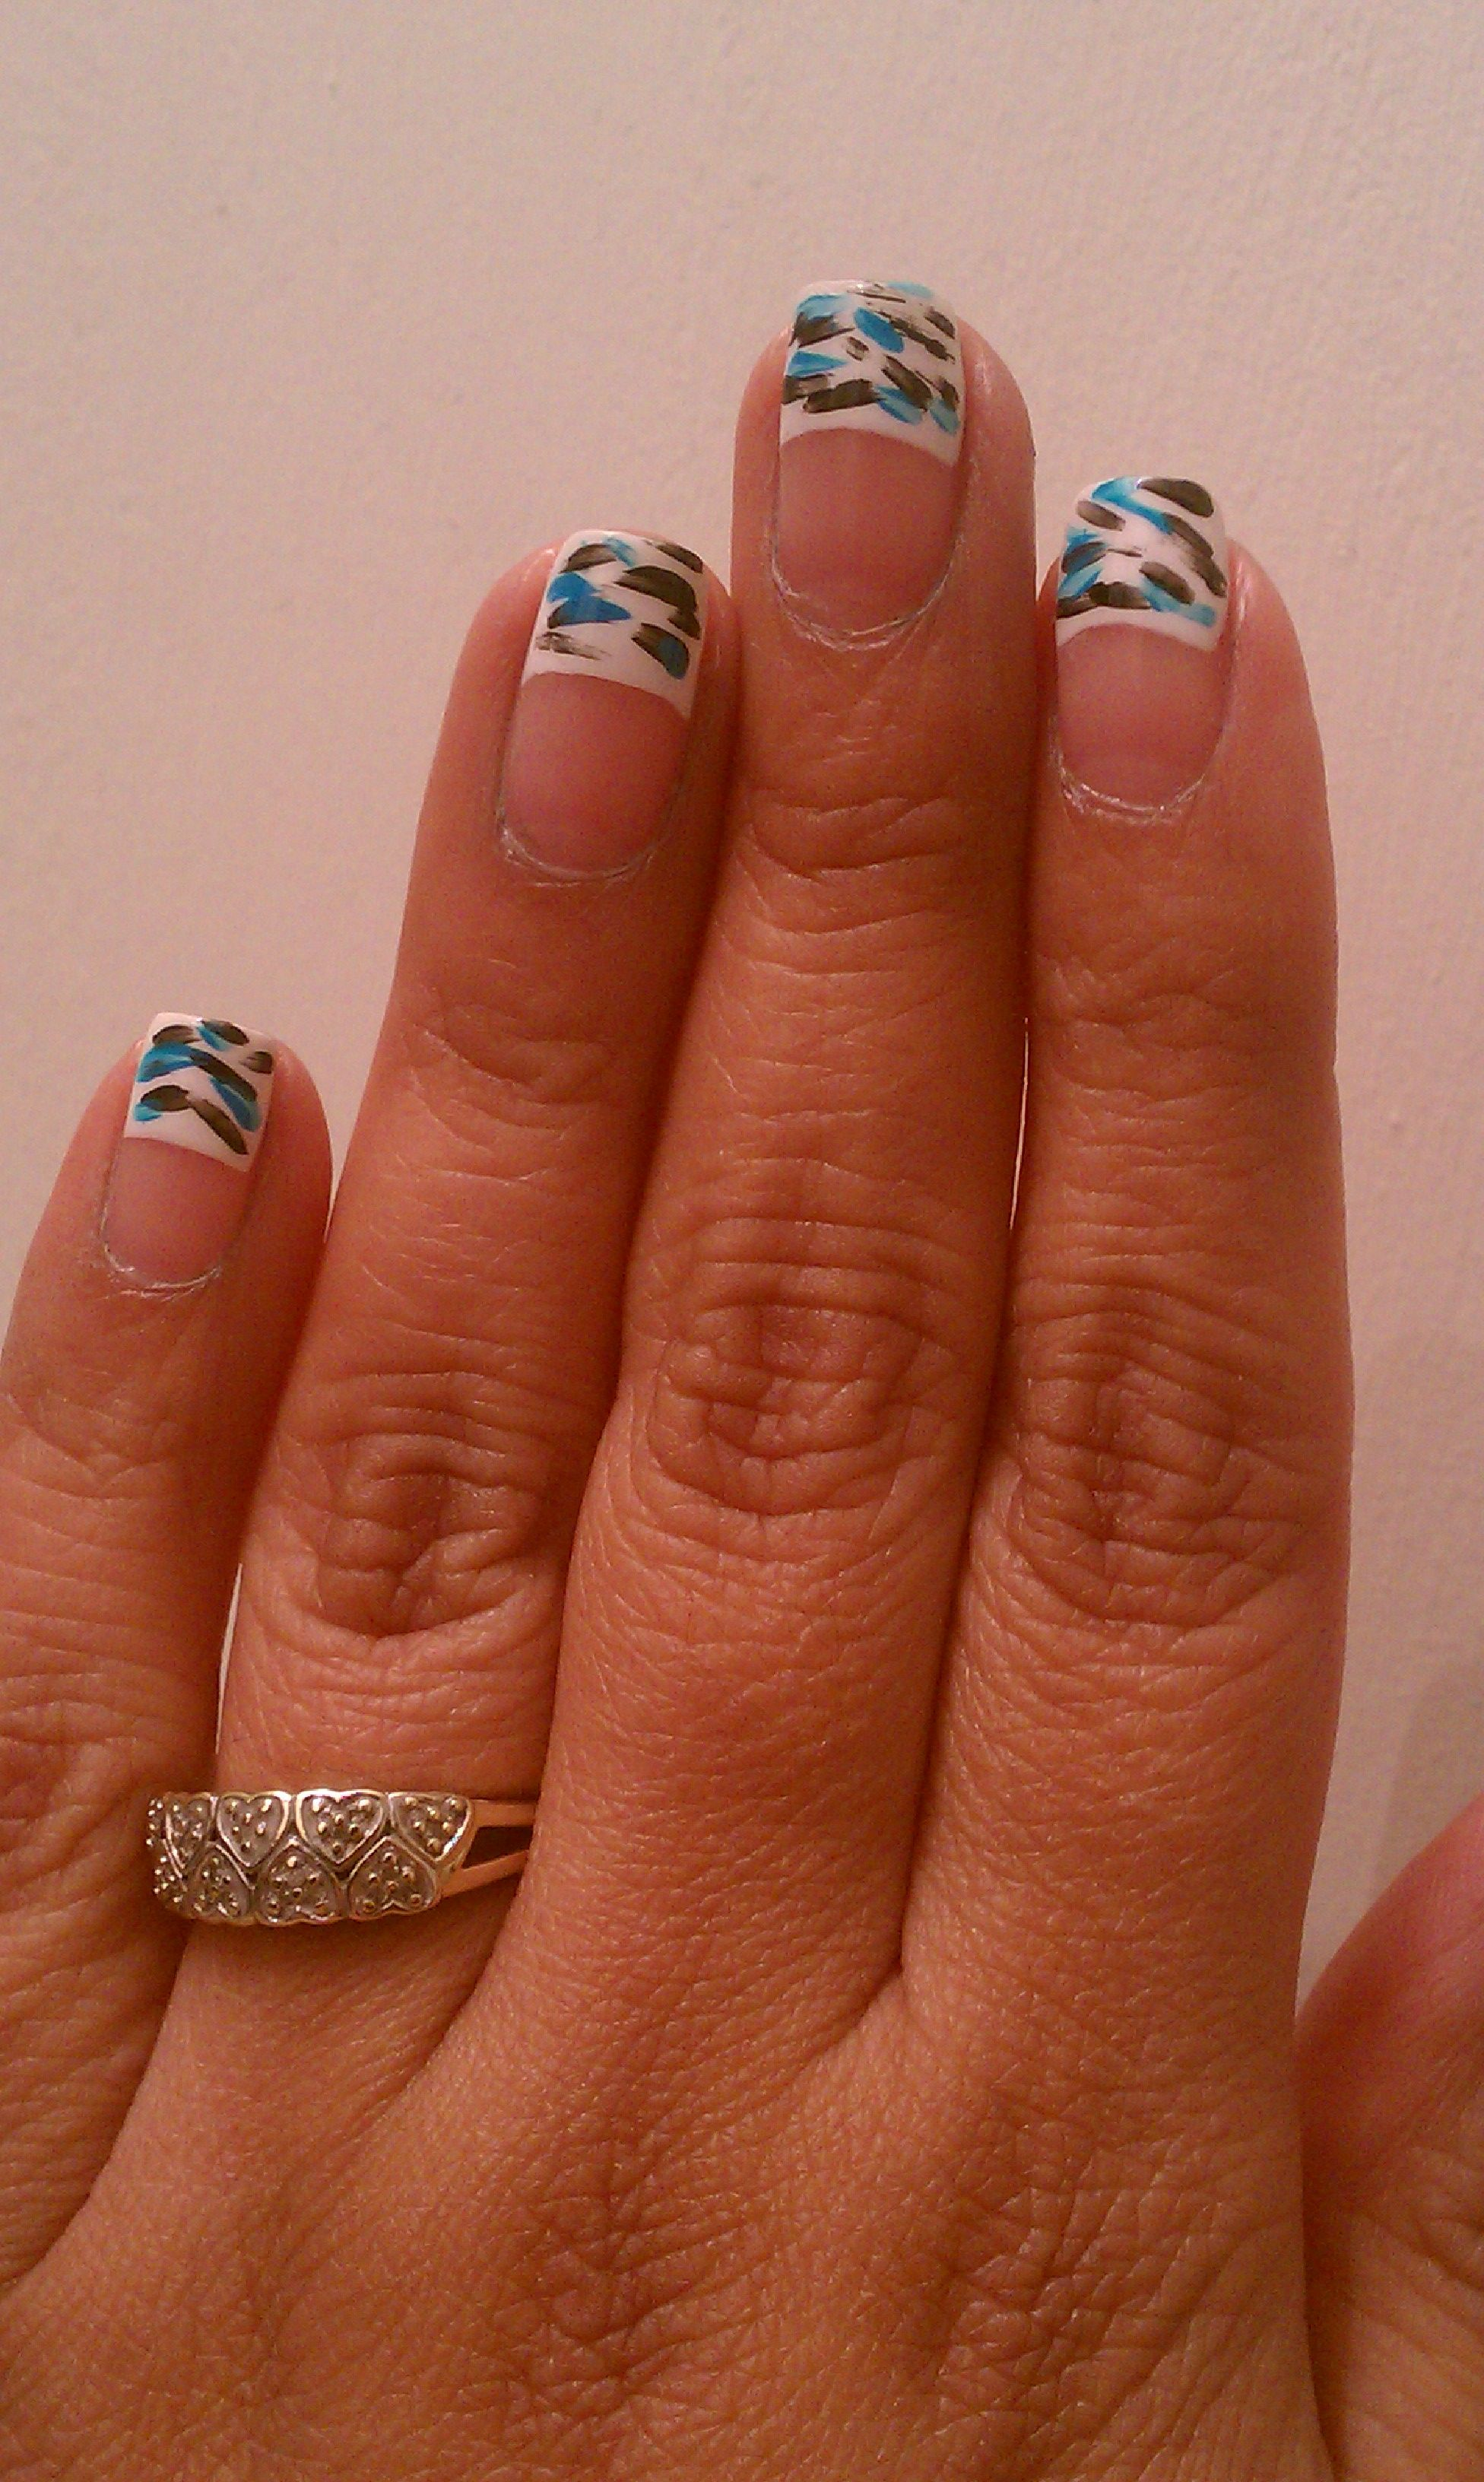 Another angle - french tip nails with paint brush stroke accents ...